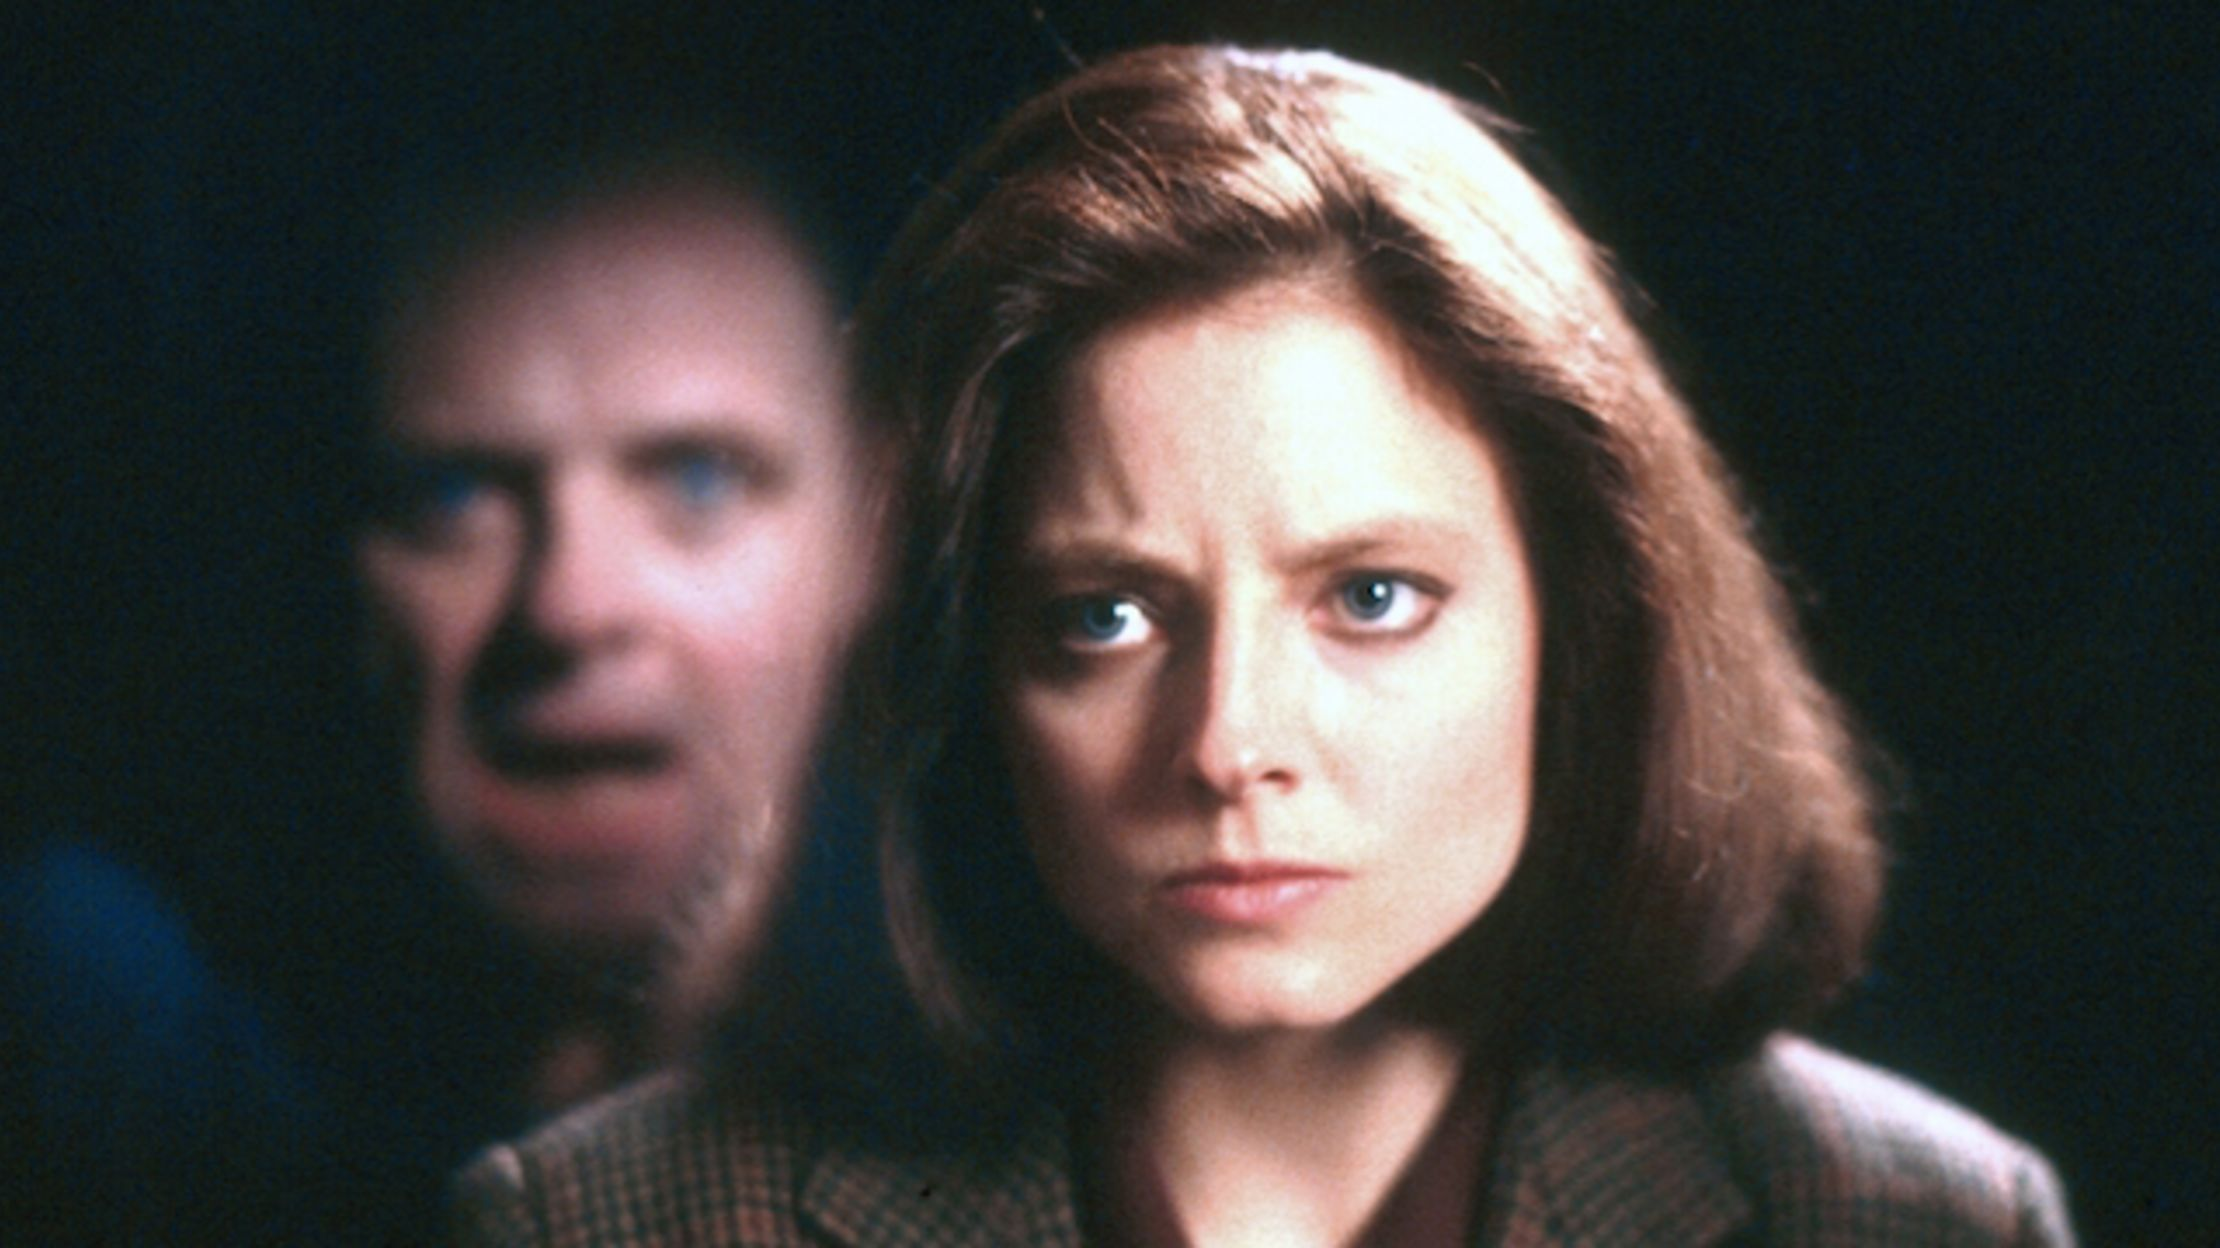 Watch or Read All Things 'Silence of the Lambs' | IndieWire